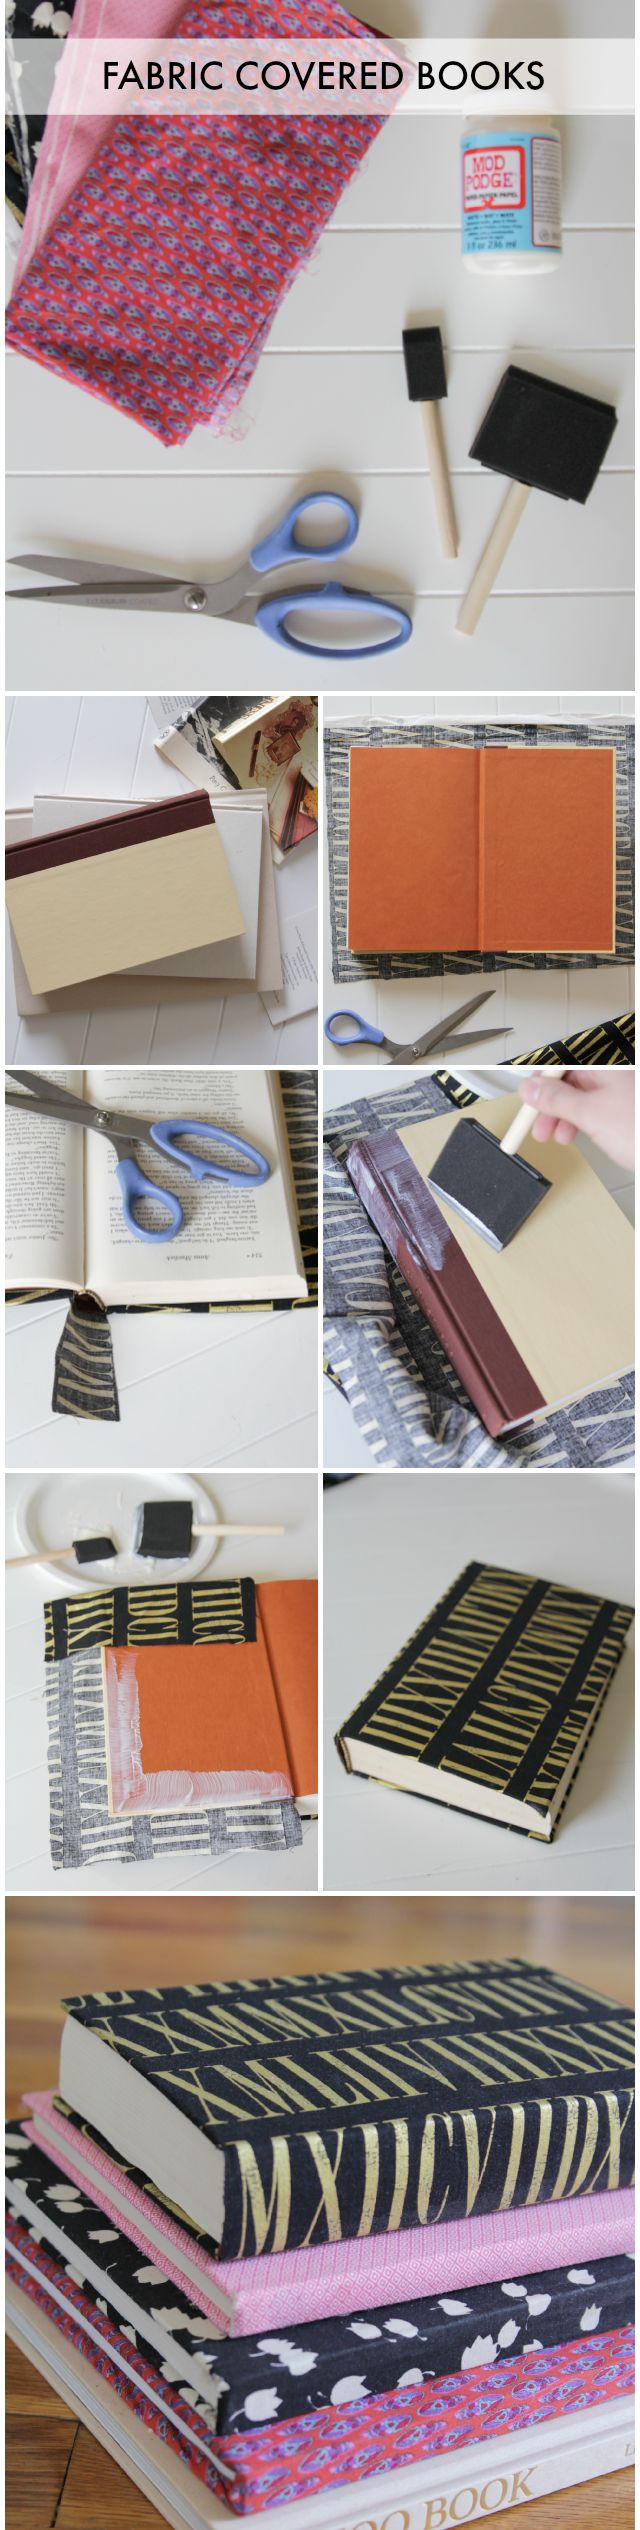 DIY Fabric Covered Books | Decor Fix #diy #crafts